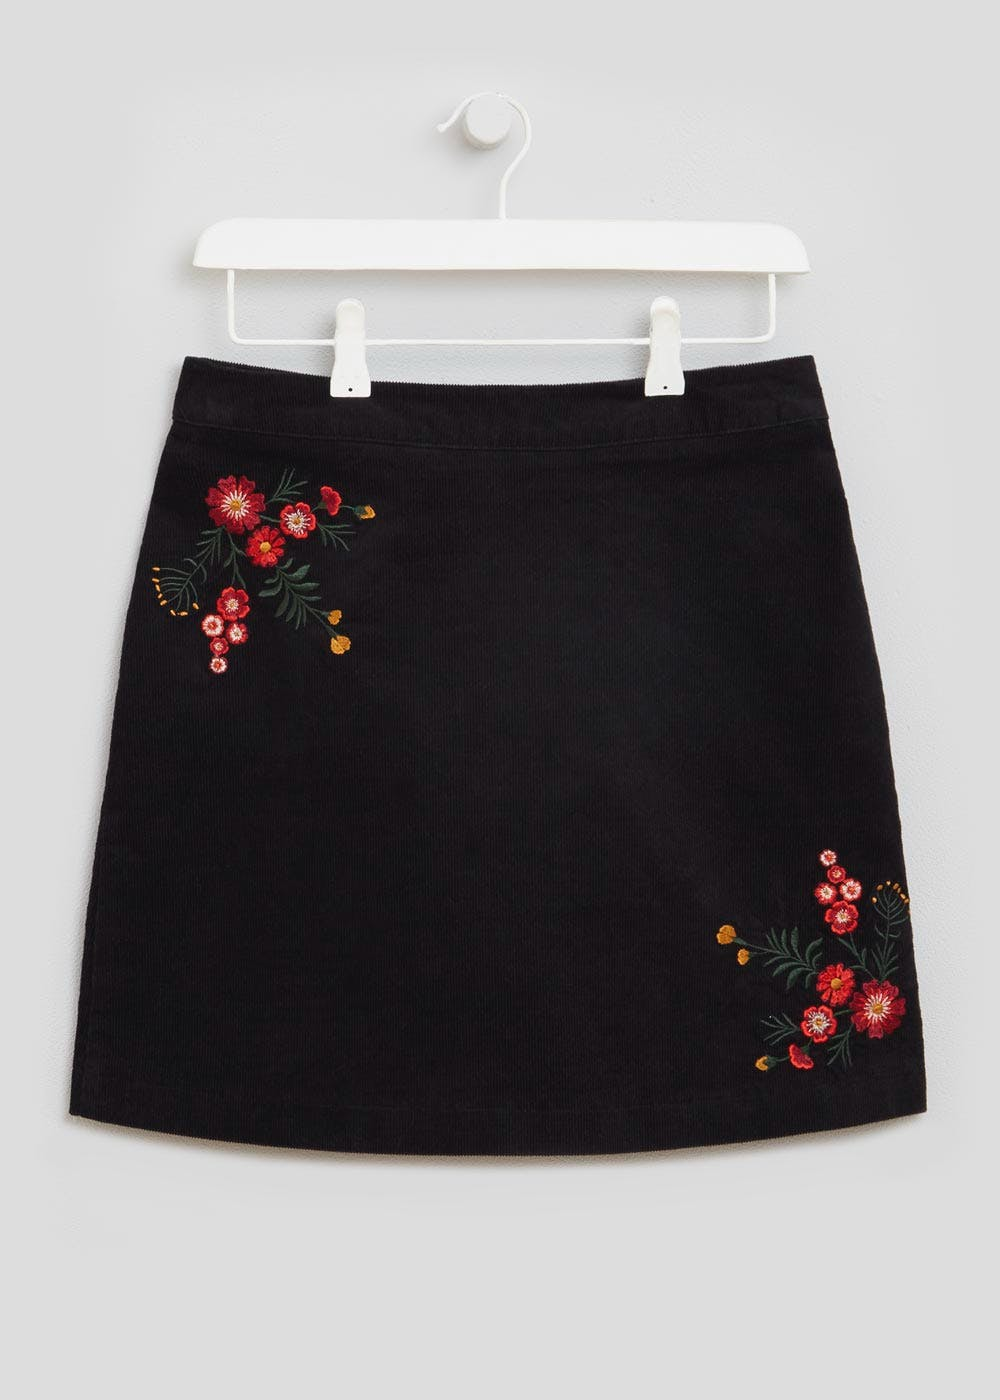 baef4c33fe Floral Embroidered Cord A-Line Skirt – Black – Matalan